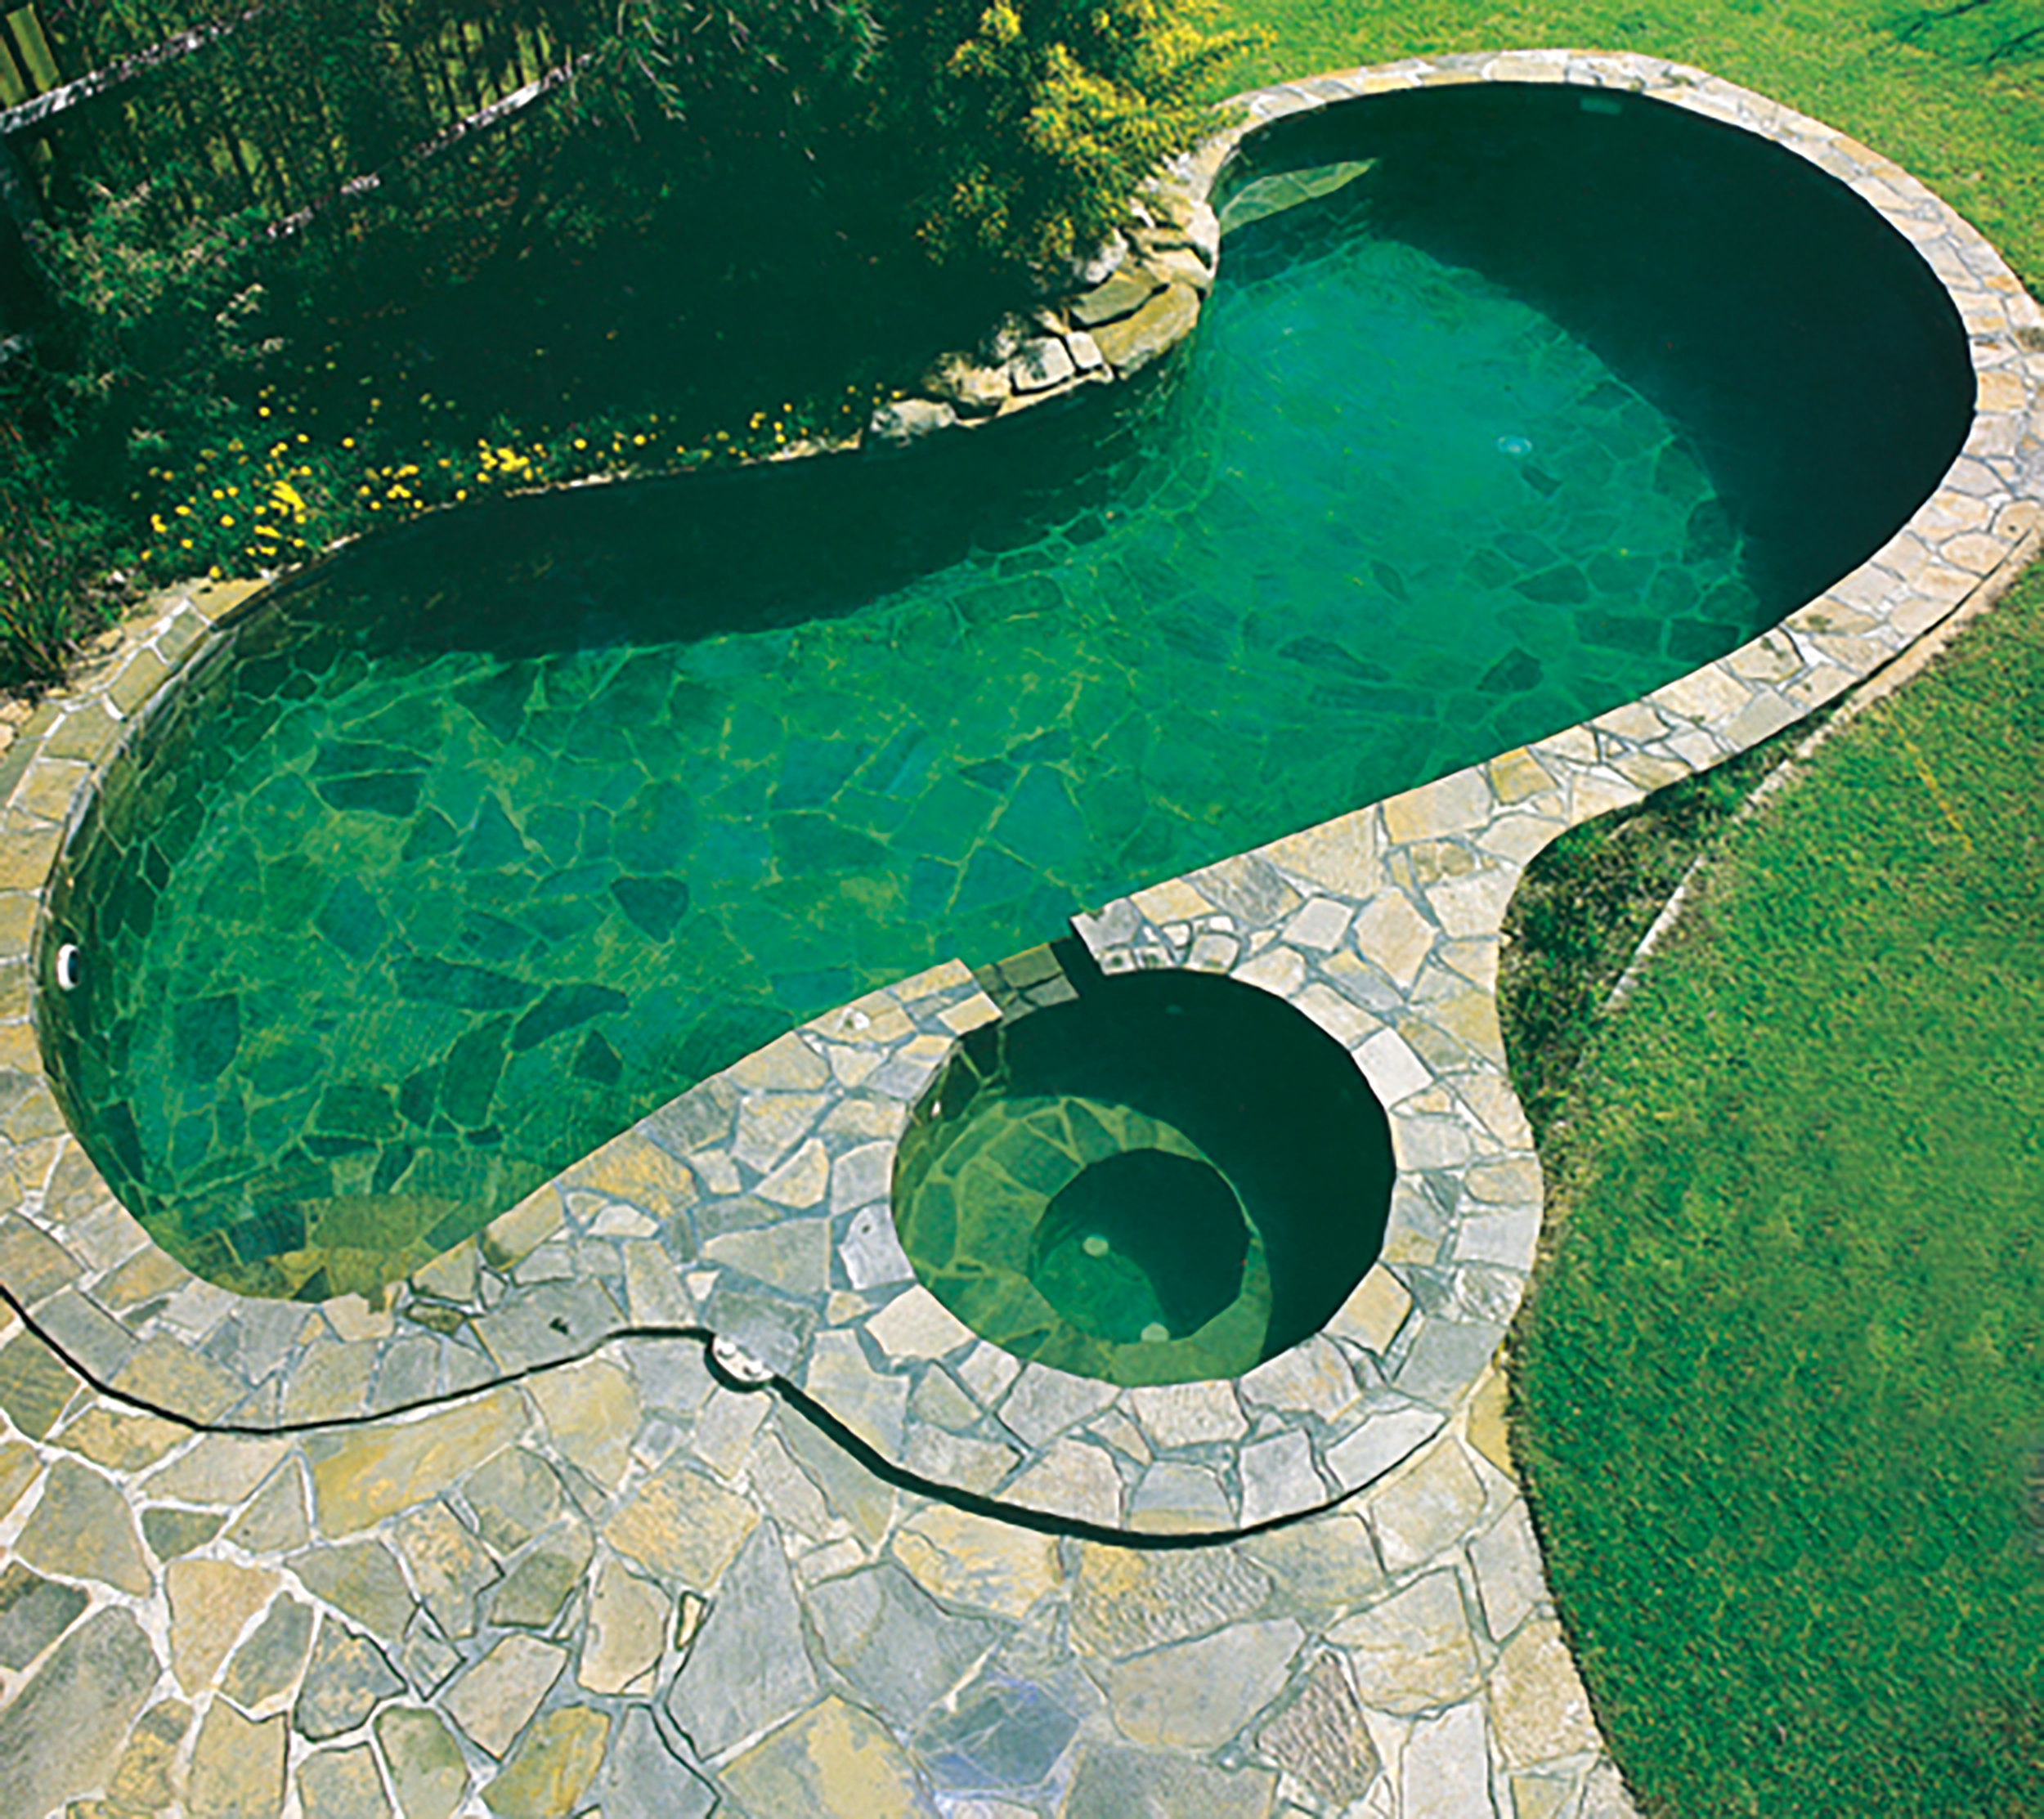 Crazy Paving in Wistow Stone around Pool and Spa as Coping